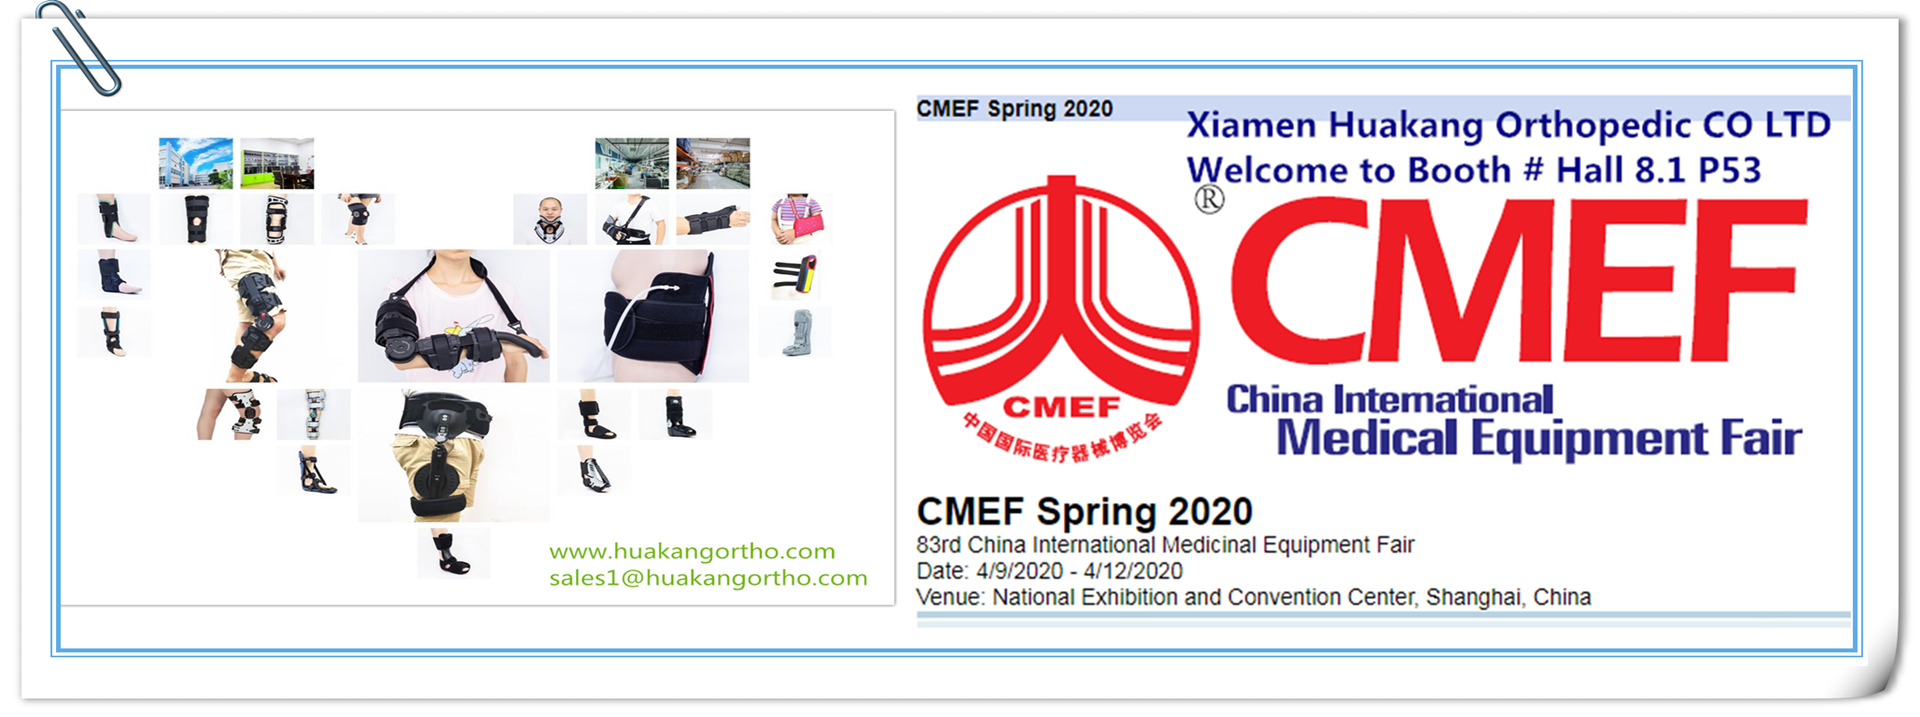 Medical Devices orthopedic braces Manufacturer at CMEF